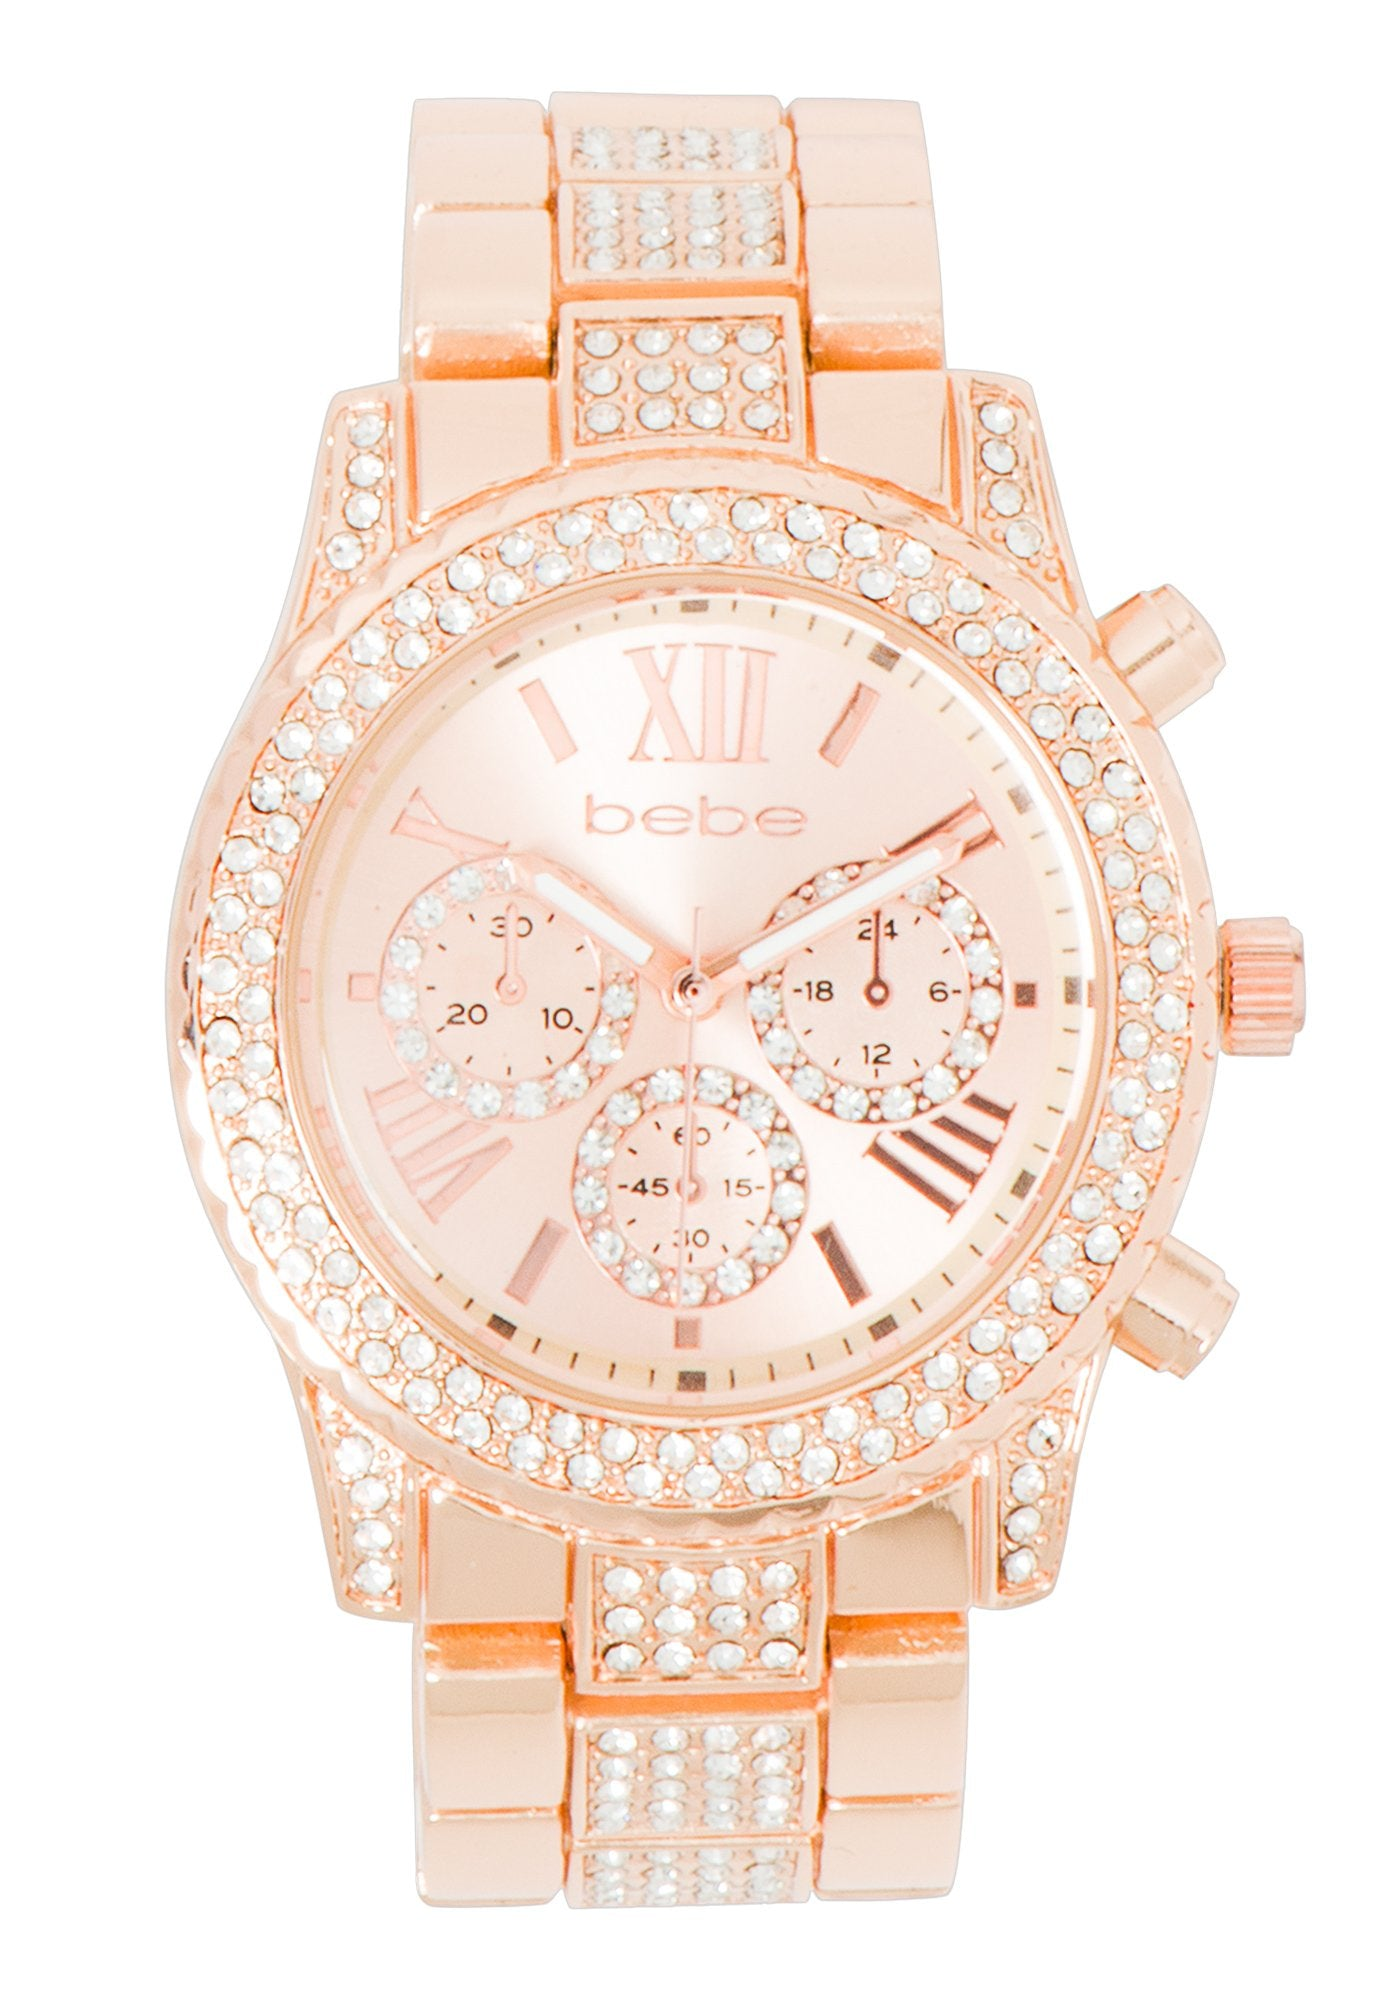 Women's Bebe Crystal Encrusted Watch in ROSE GOLD Metal